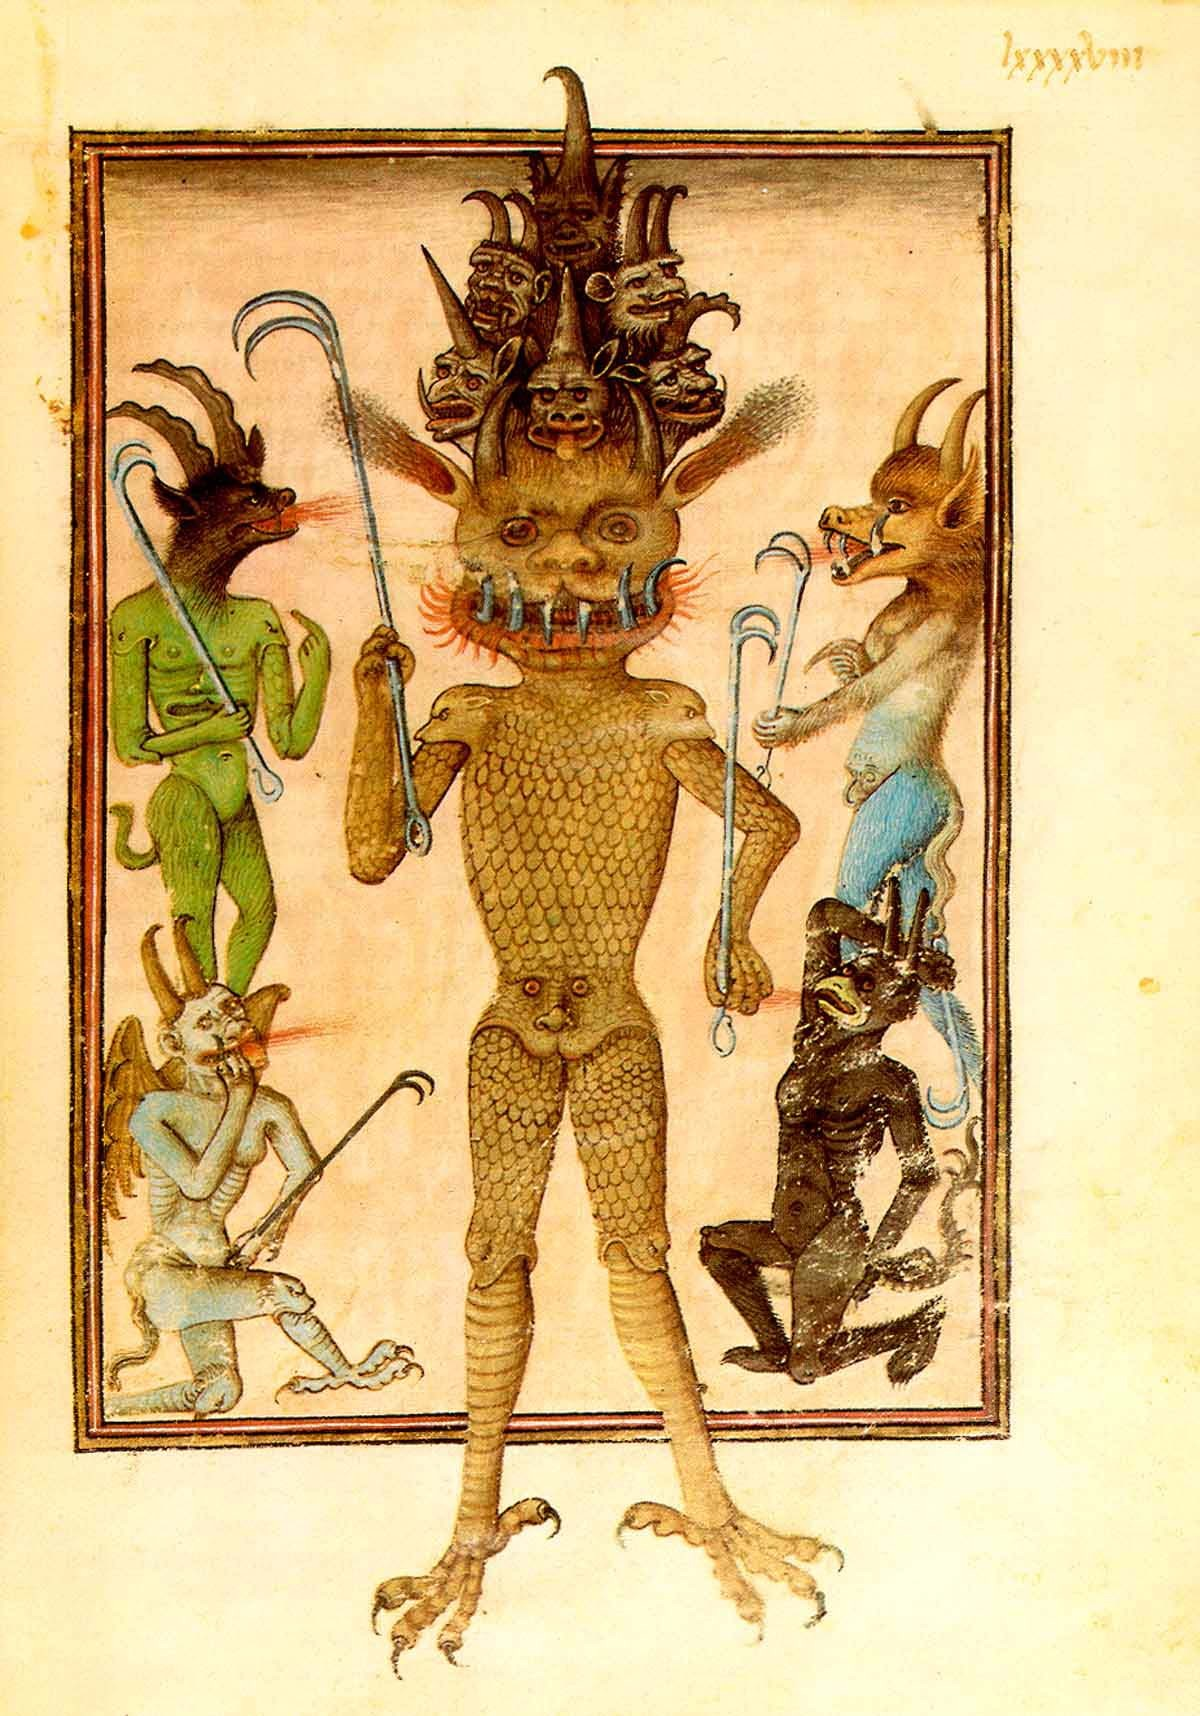 Bodleian Teufel via Albrecht Classen, The Epistemological Function of Monsters in the Middle Ages, 10. Februar 2013